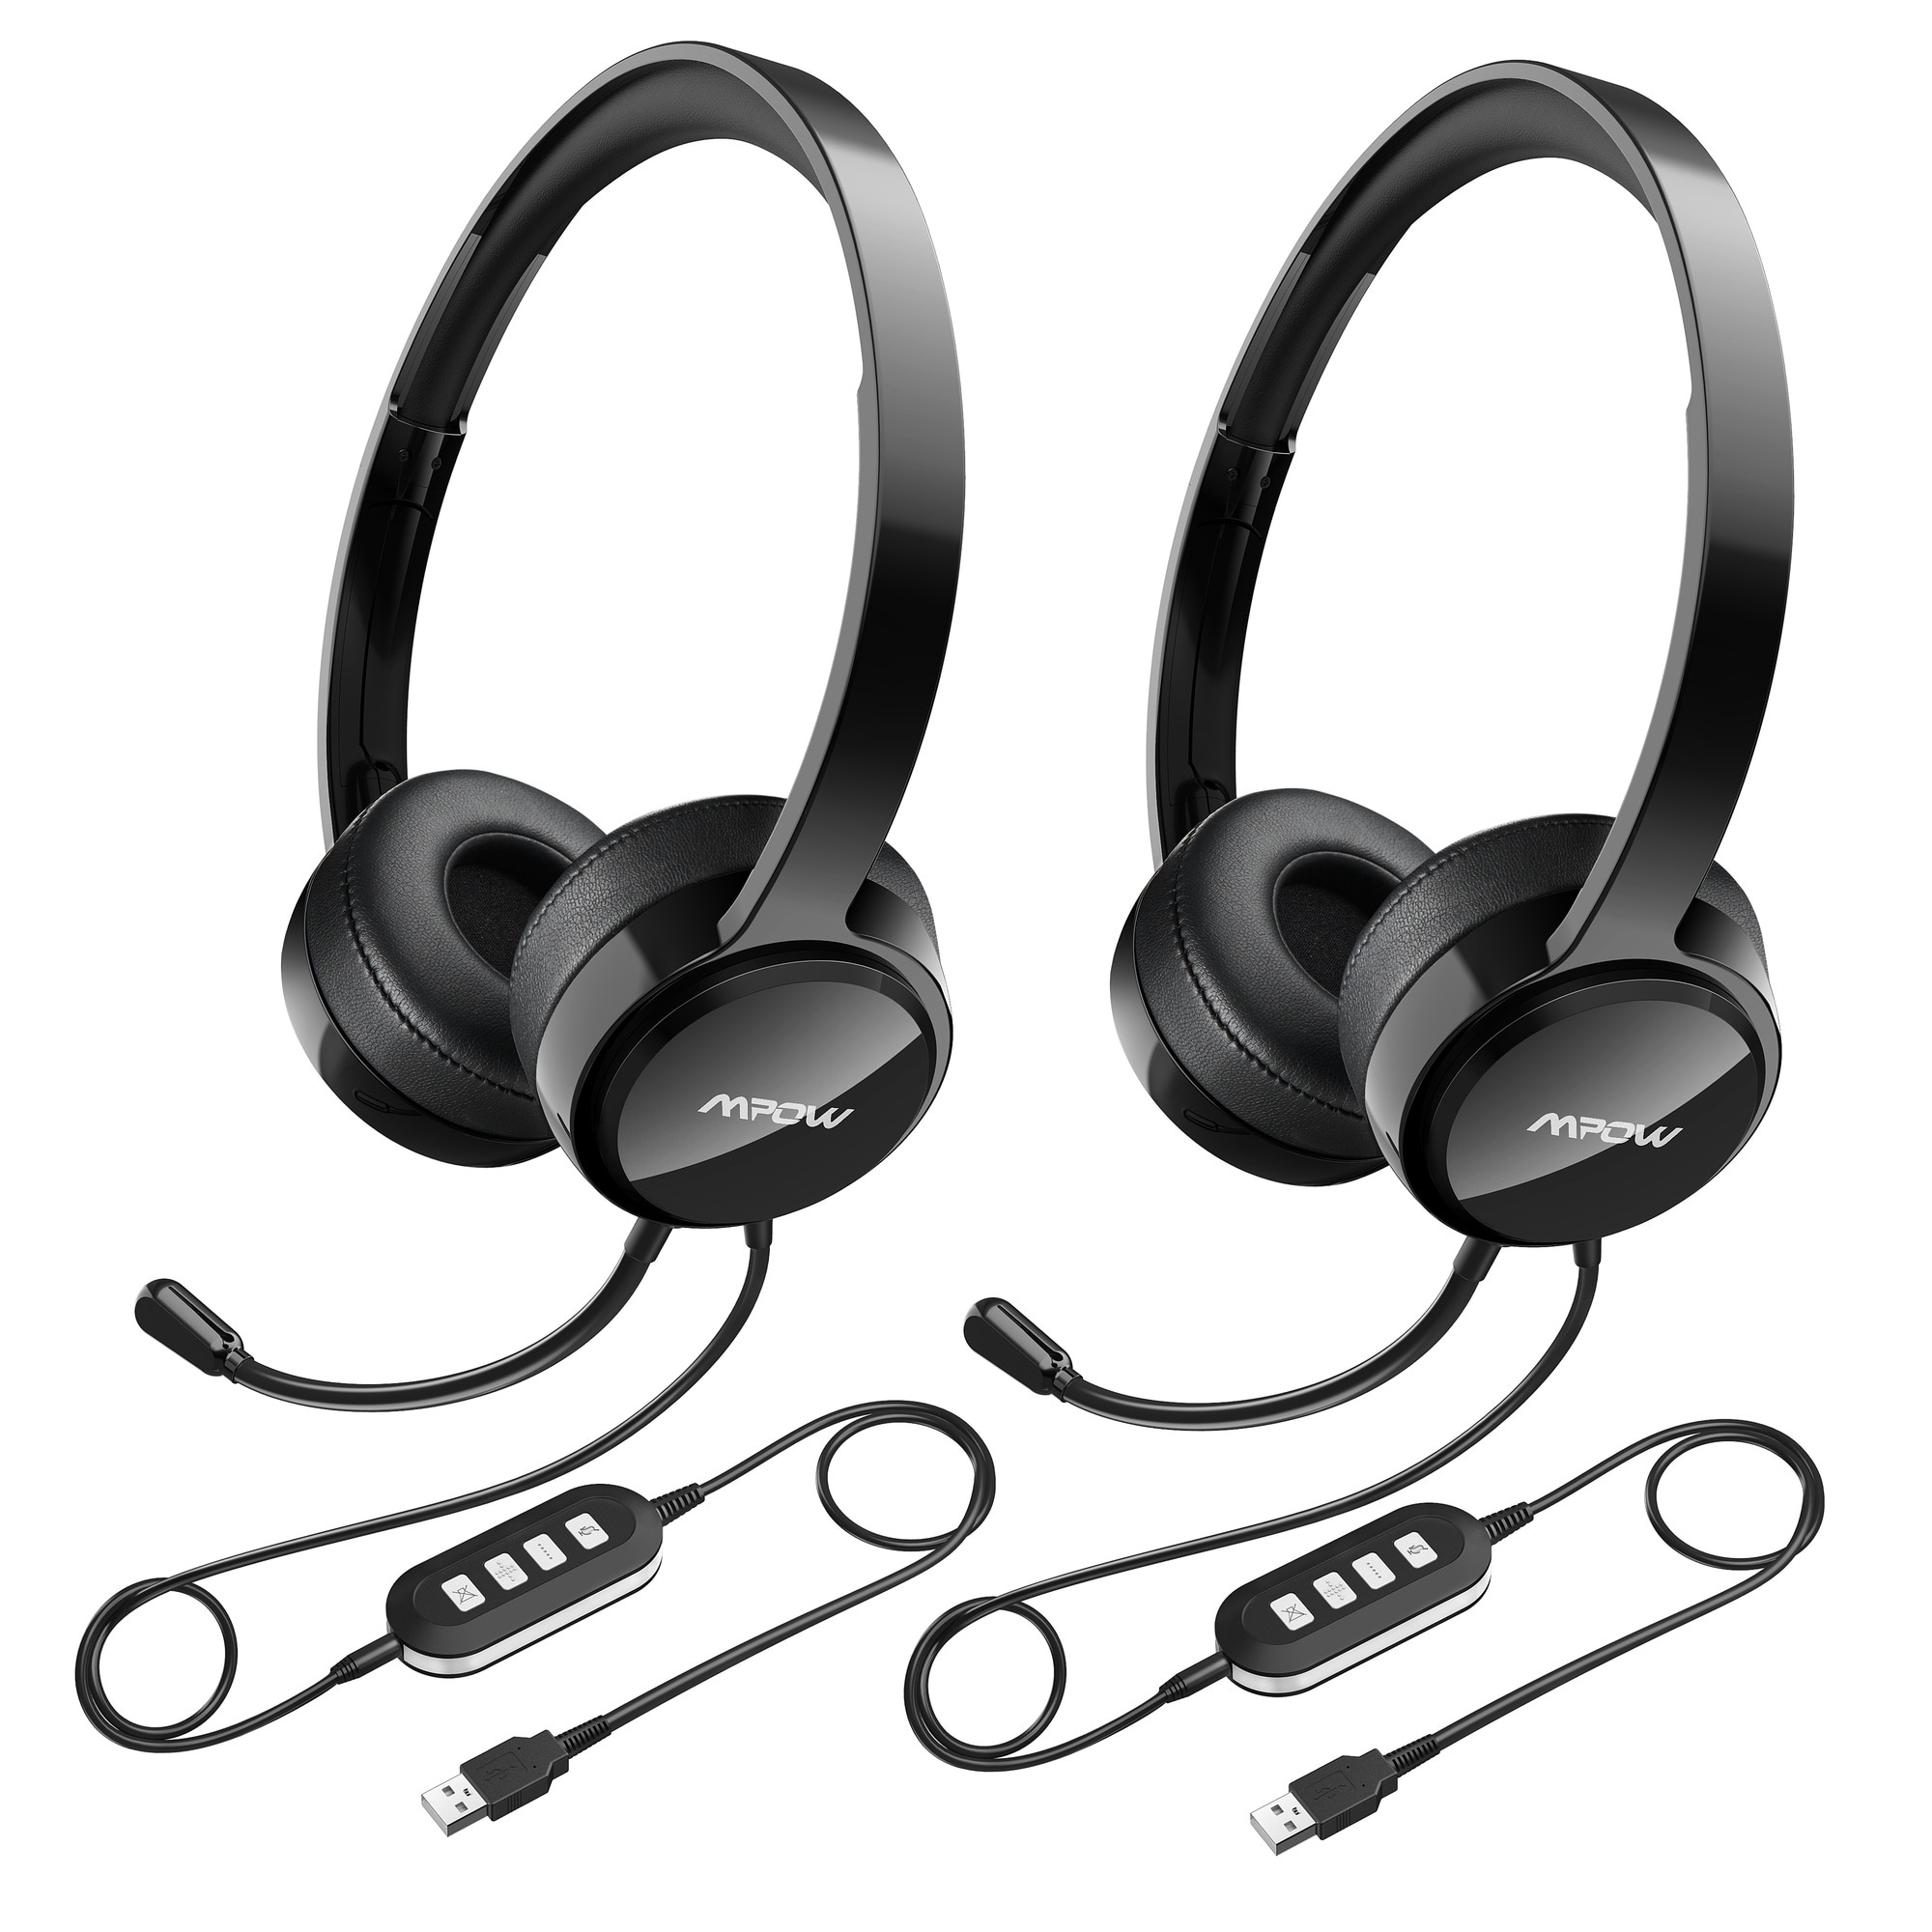 ad9588ef0d1 Shop Mpow USB Headset with Noise Reduction Sound Card, In-line Control,  Protein Memory Earmuffs for Skype Calls with Mac and PC - On Sale - Free  Shipping On ...